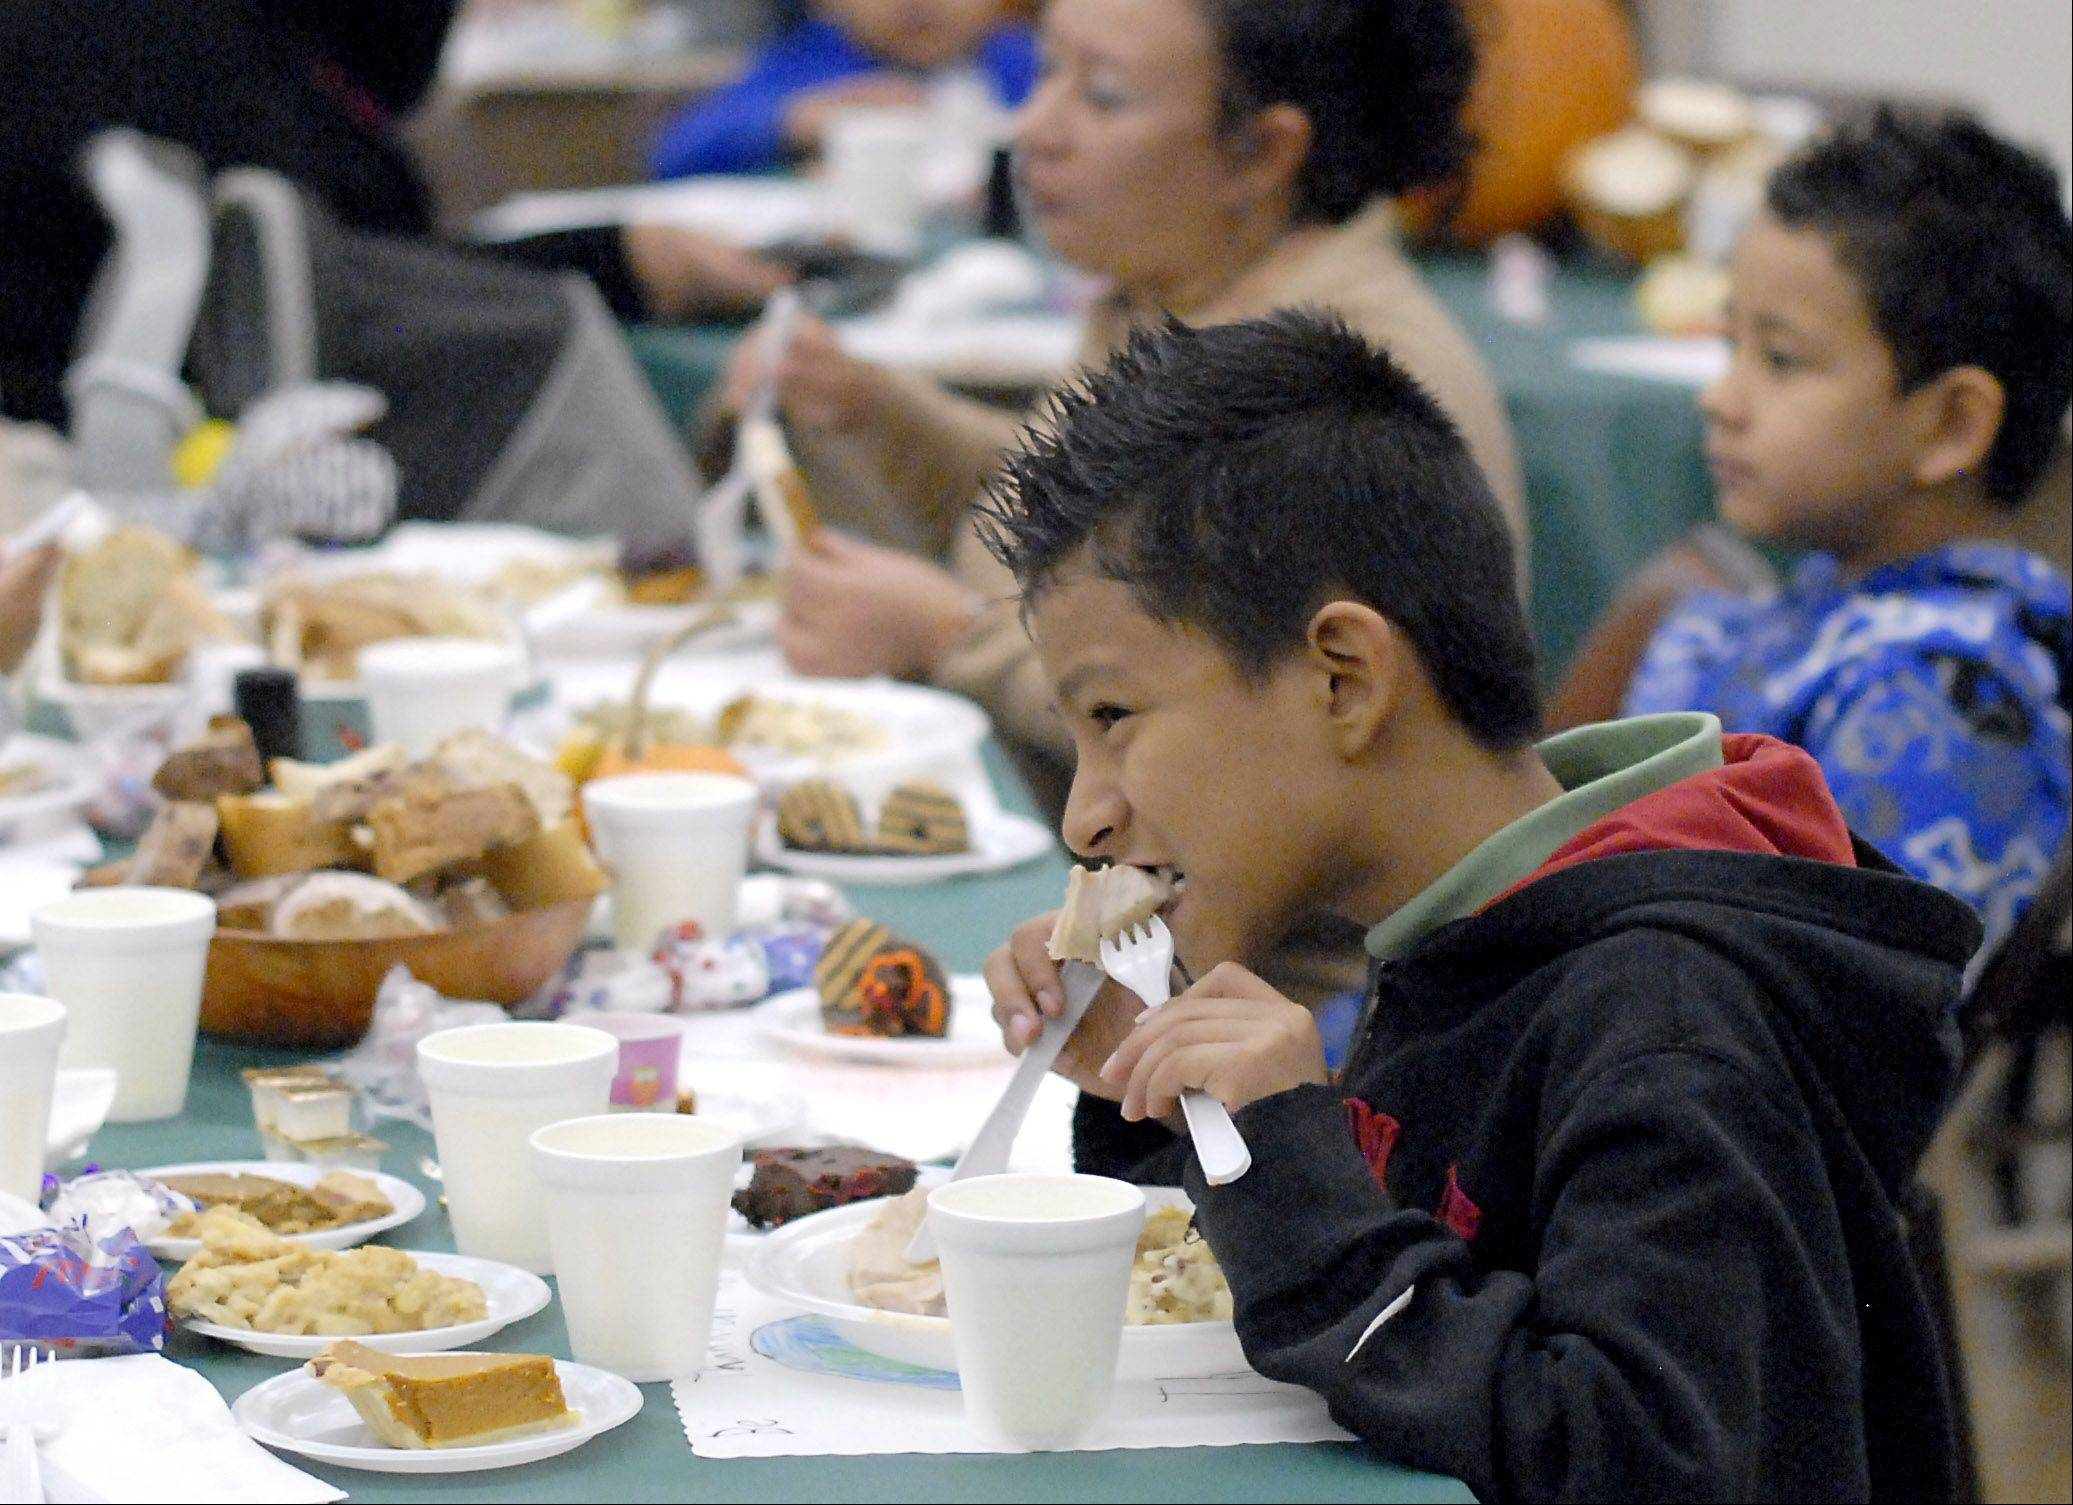 Daniel Lopez, 9, of Elgin chows down on a slice of turkey at Elgin's fourth annual community dinner held at the First United Methodist Church. This is the third year his family has been coming to the dinner.